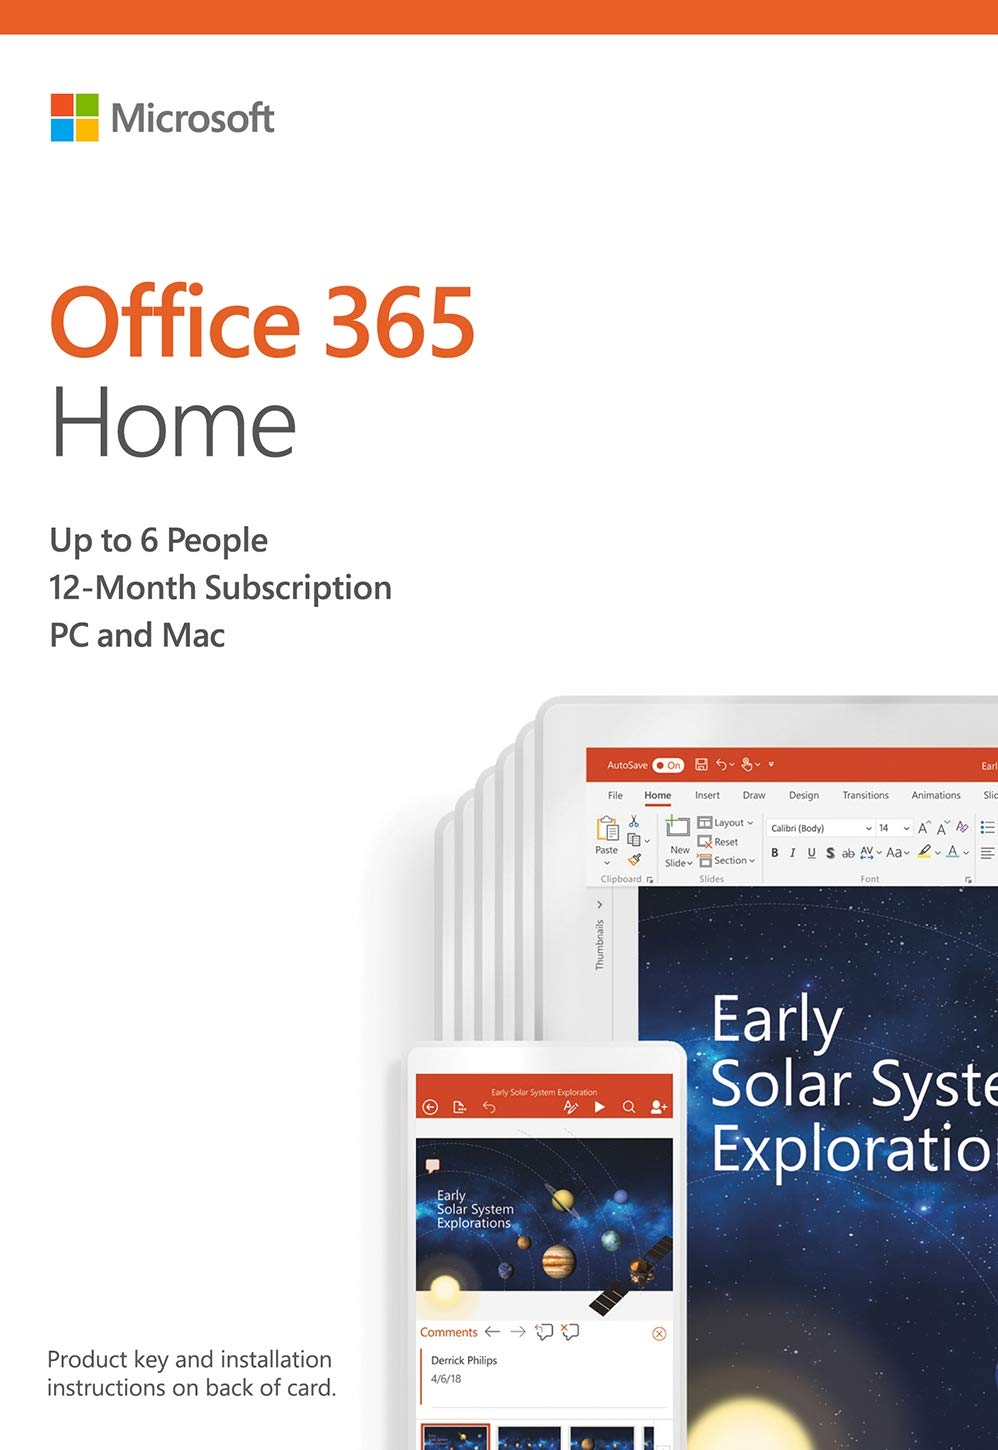 Microsoft Office 365 Home 12 Month Subscription up to 6 People PC and Mac Key Card by Microsoft